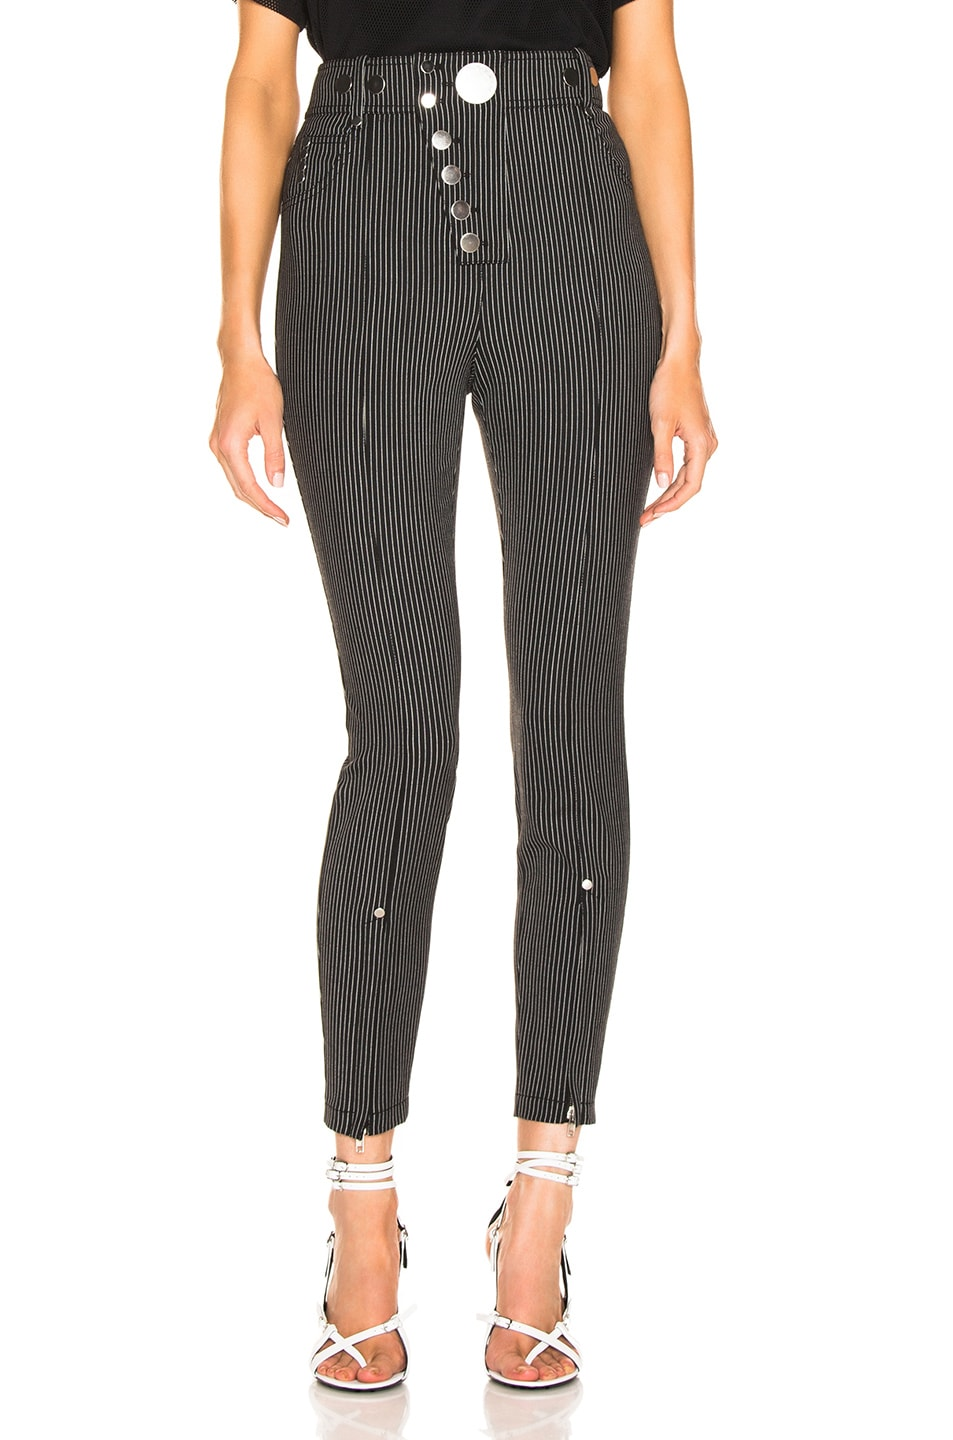 Image 1 of Alexander Wang High Waisted Snapdetail Legging in Black